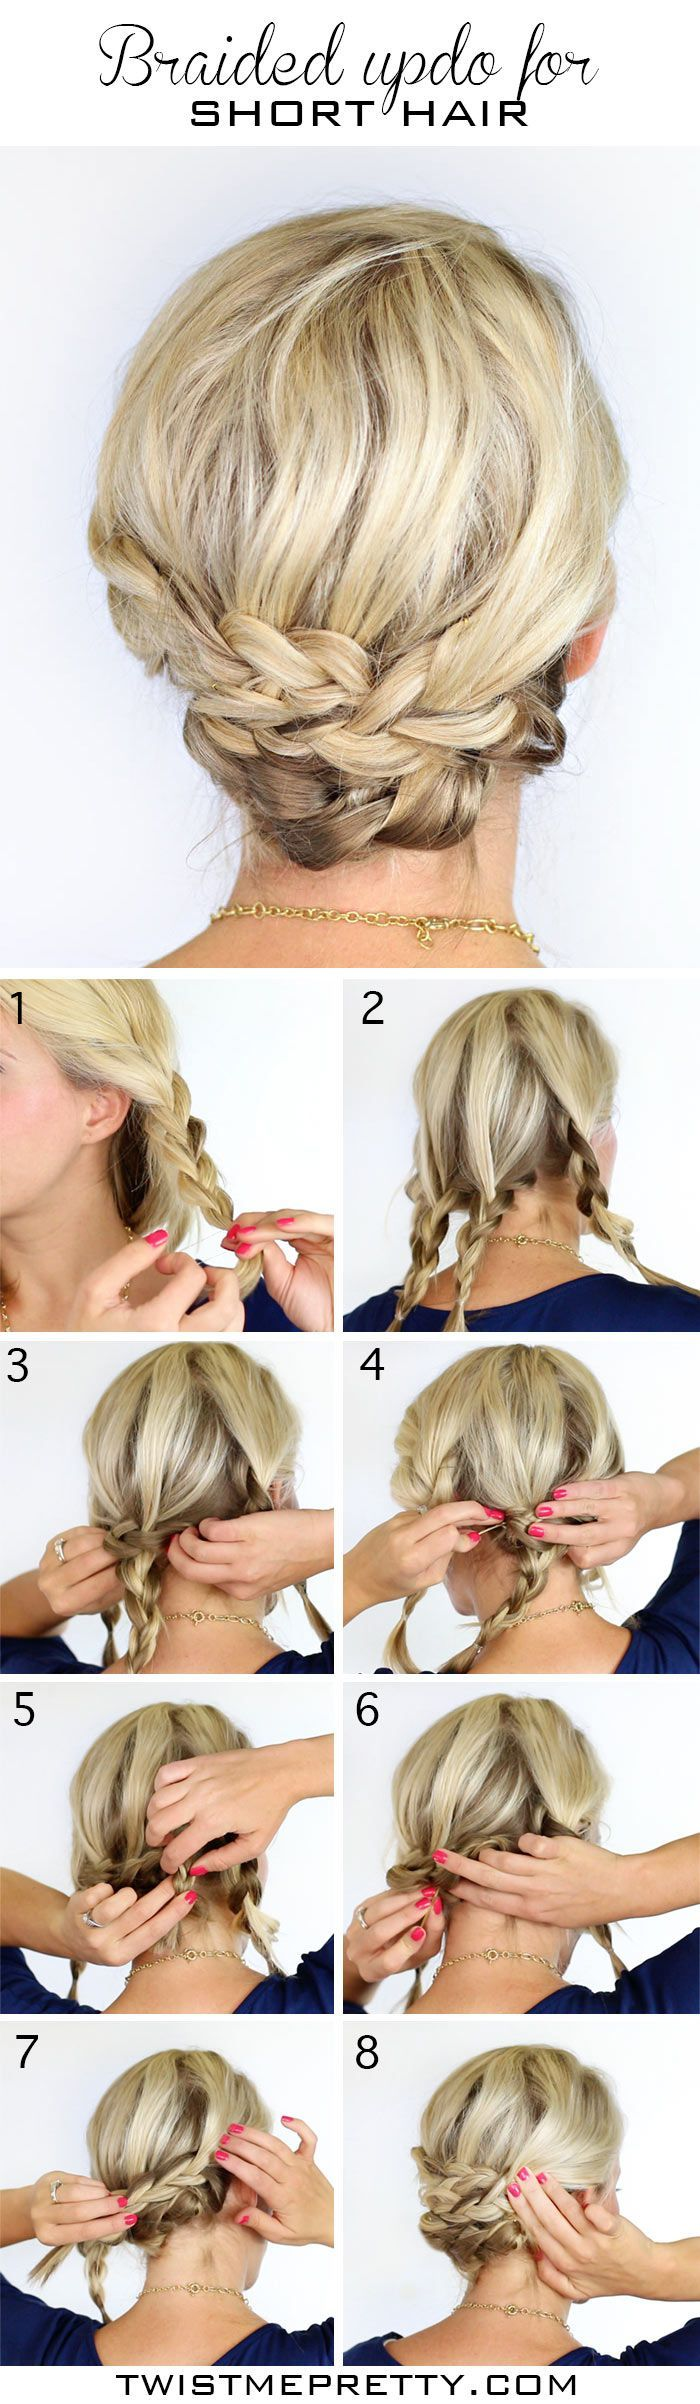 charm bracelet chain wholesale Braided Updo Hairstyle for Short Hair